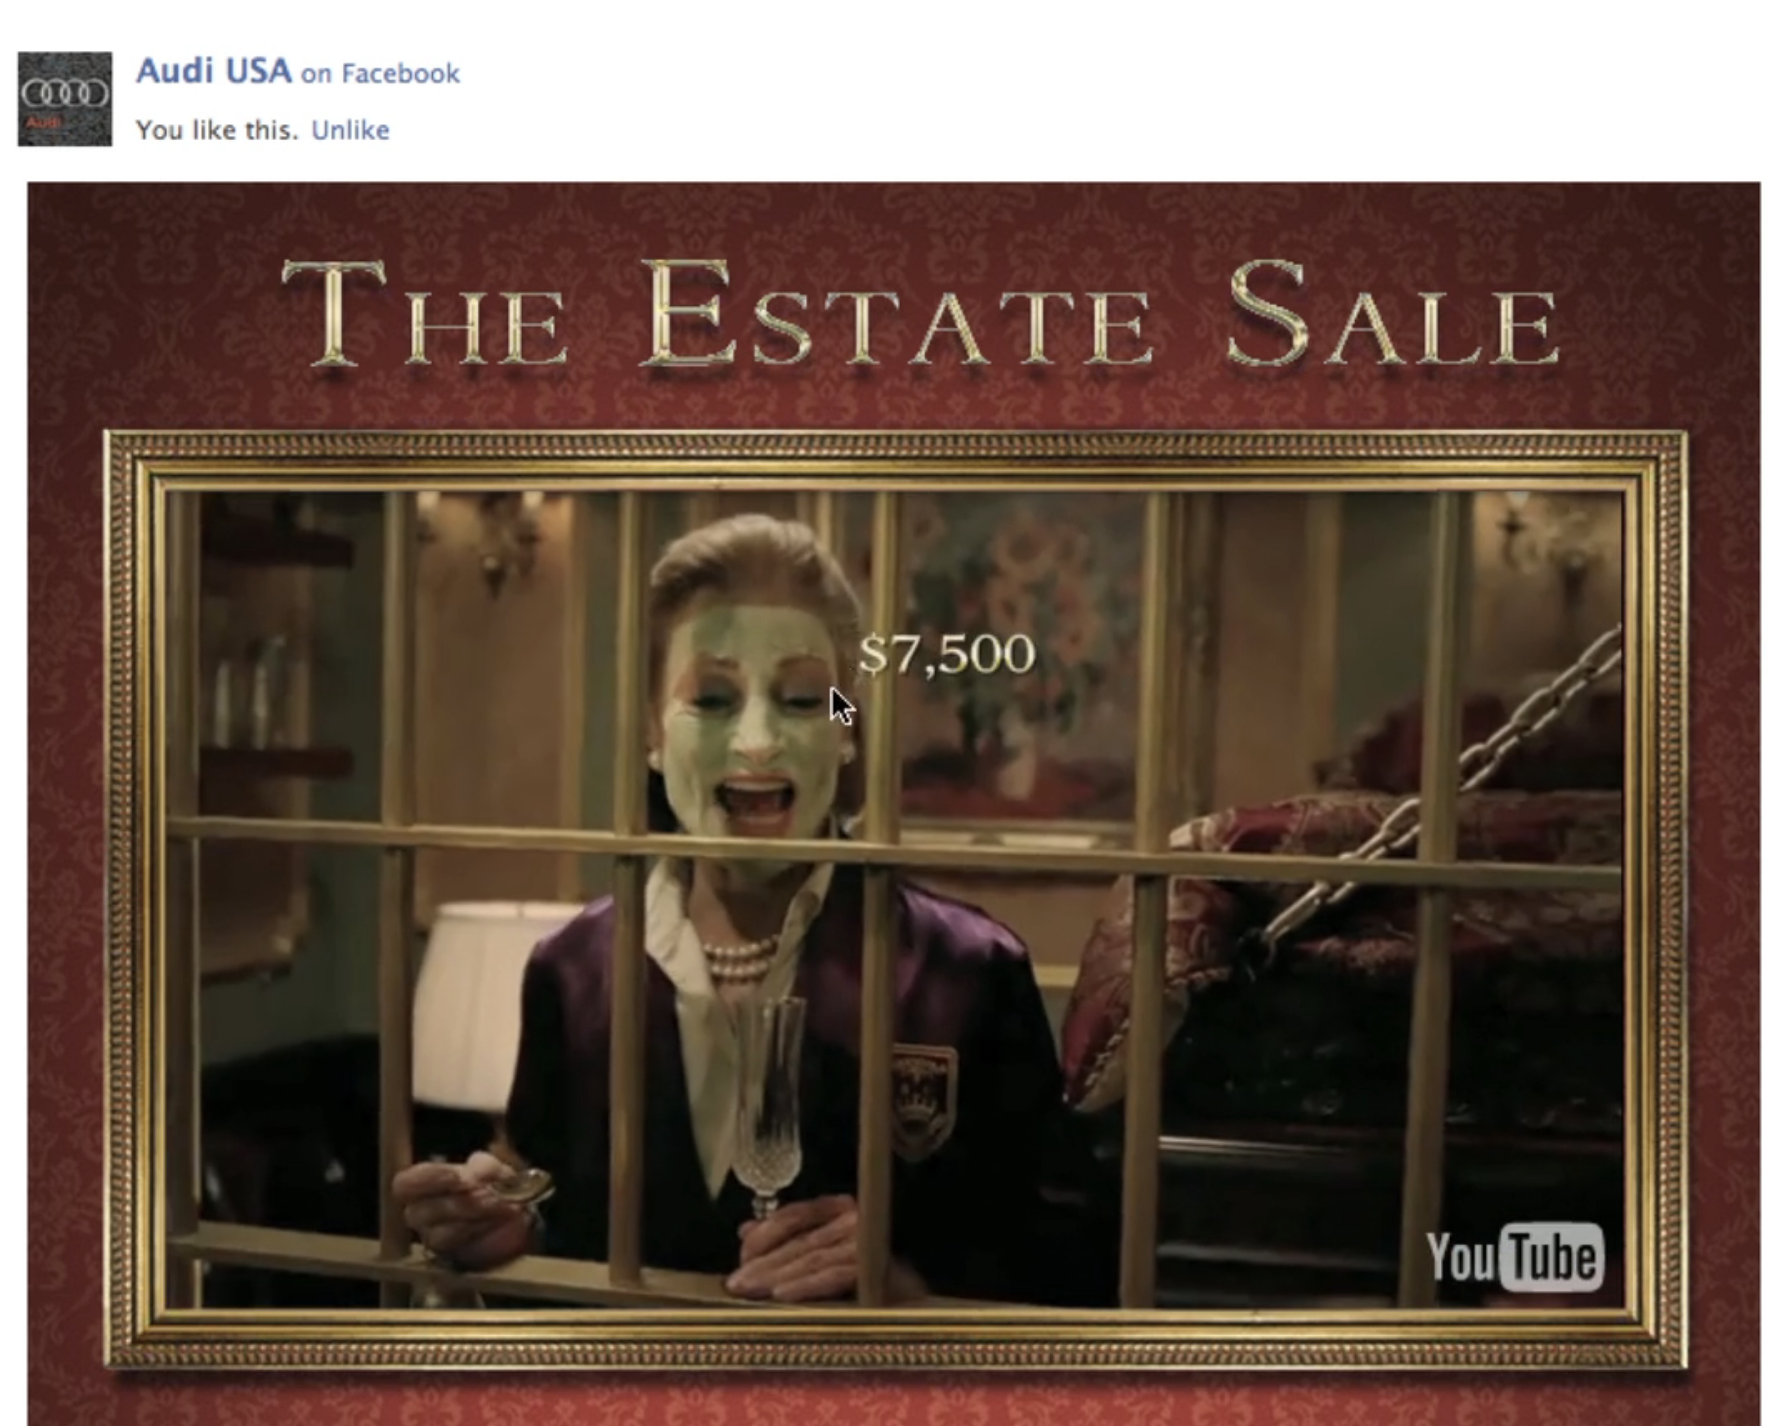 Audi Estate Sale - Facebook app turns YouTube video of Super Bowl spot into interactive game and contest.